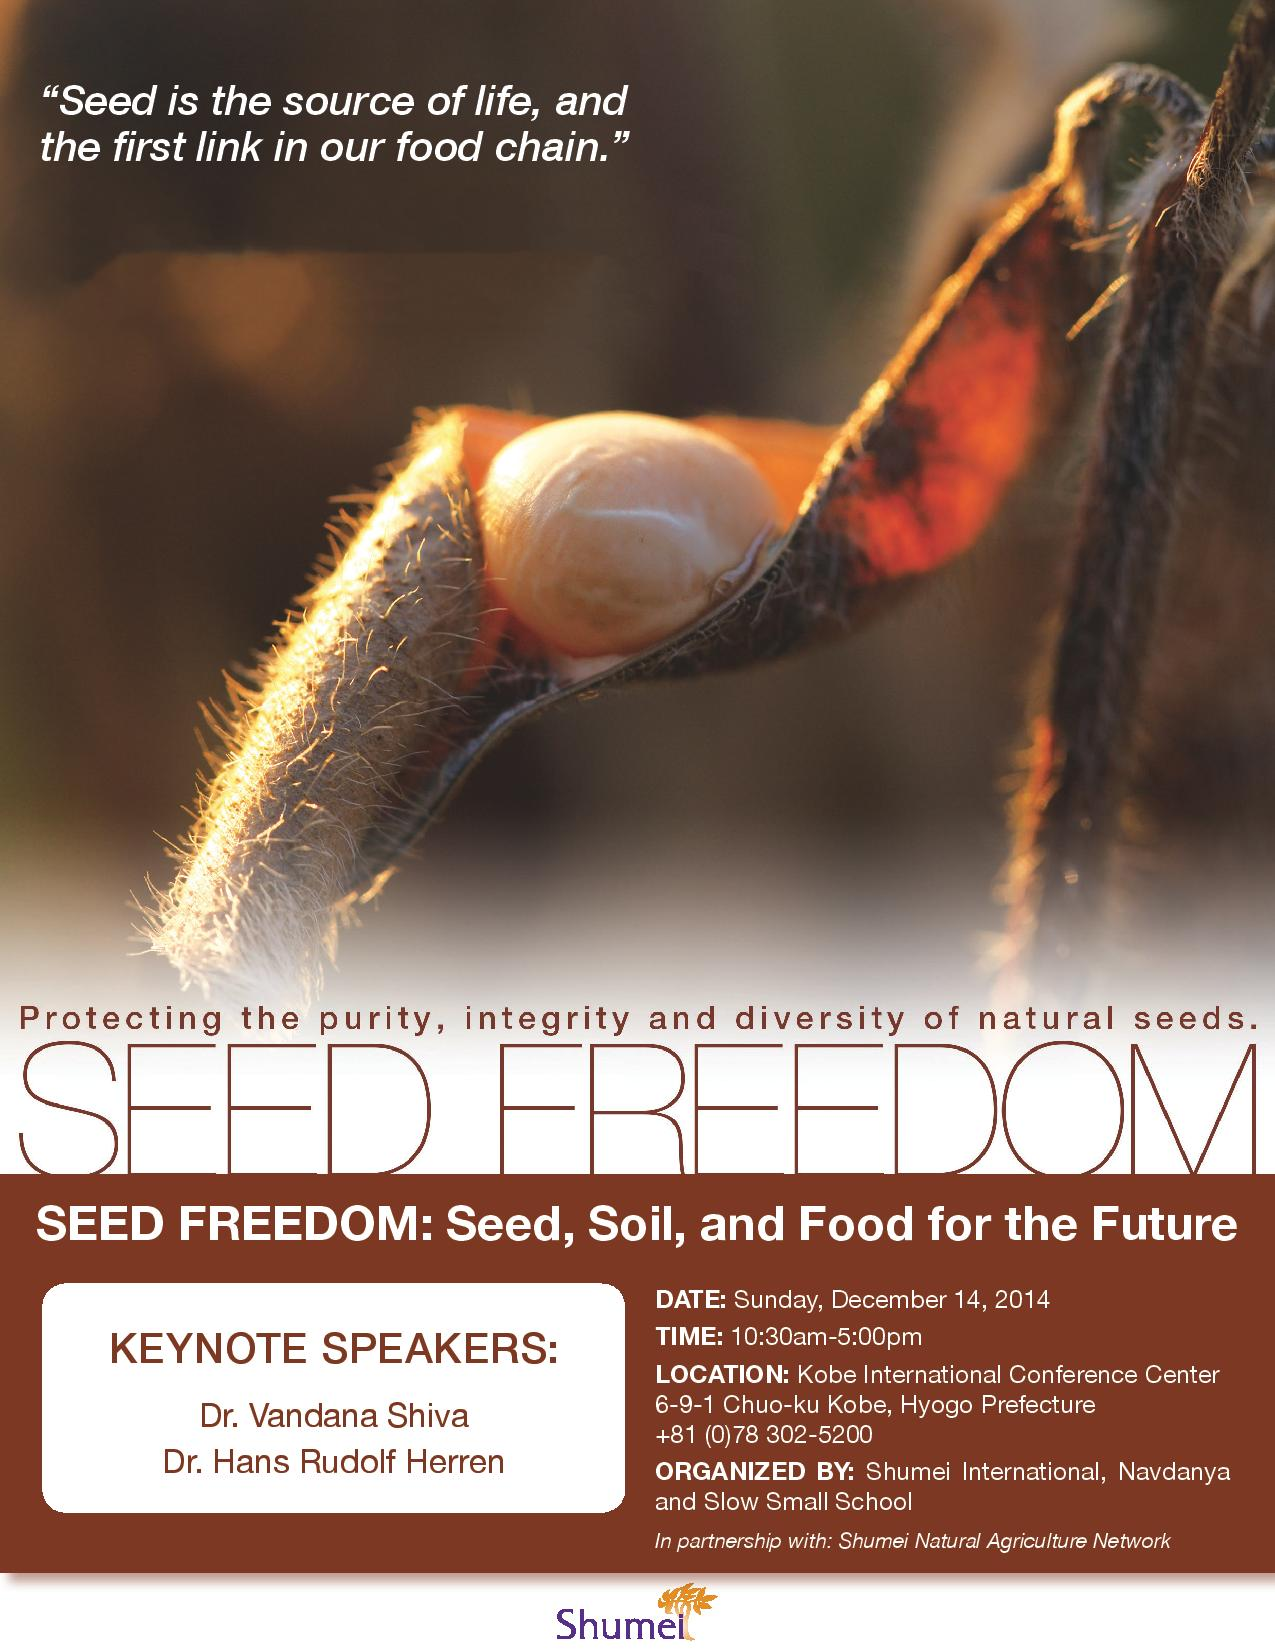 SEED FREEDOM: Seeds, Soil and Food for the Future